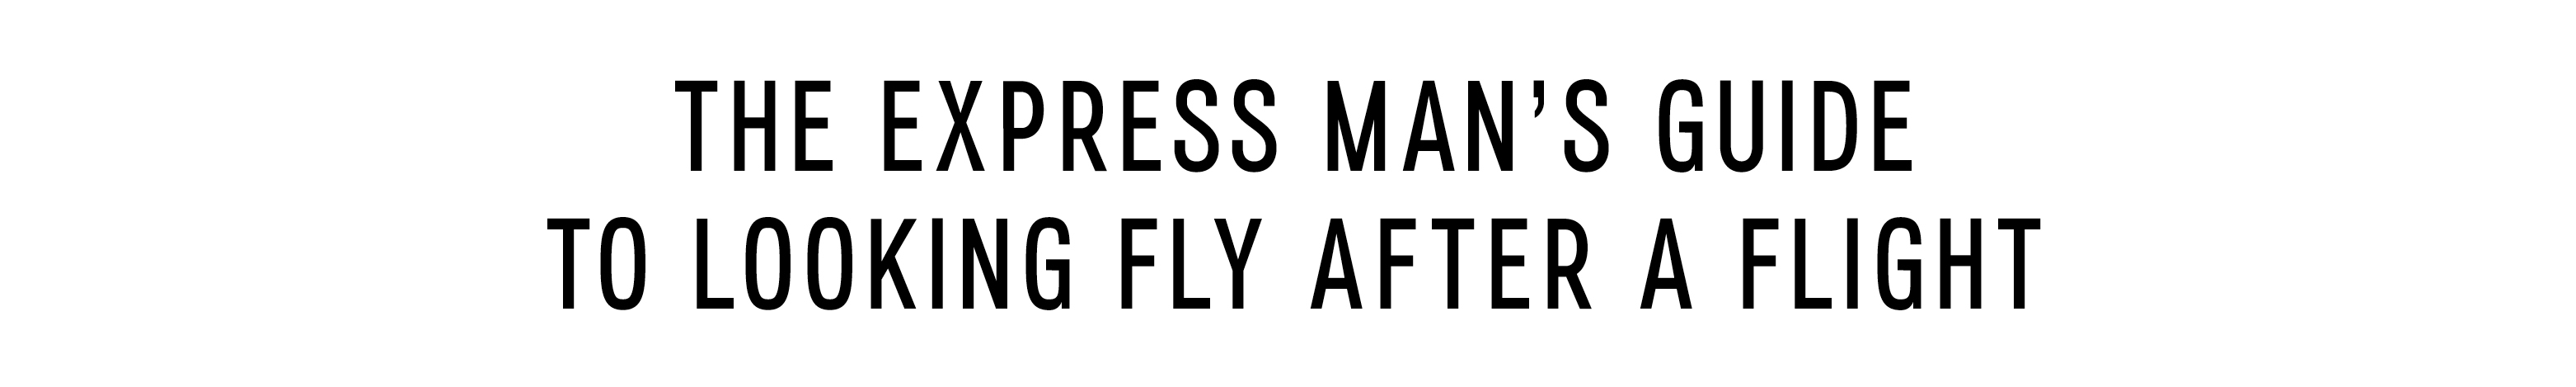 the-express-mans-guide-to-looking-fly-after-a-flight